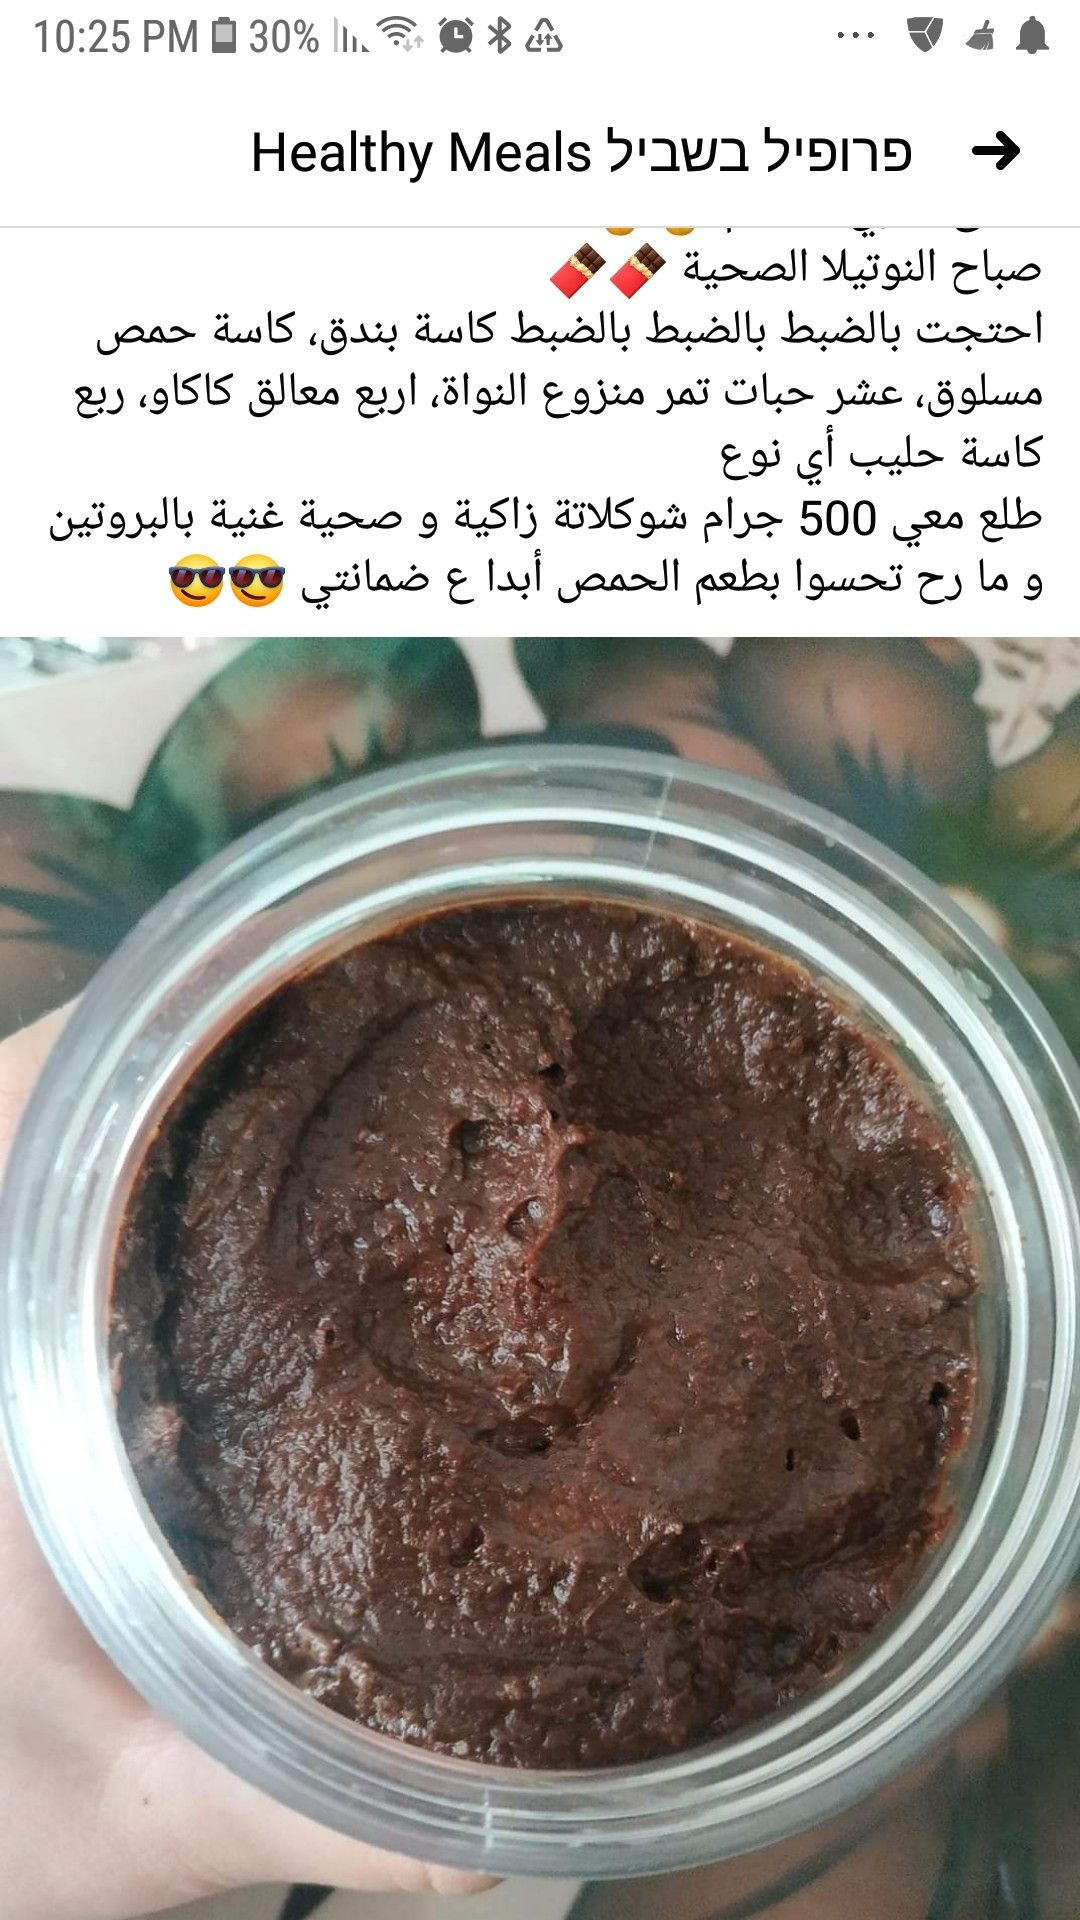 Pin By Neso Dagash On وصفات للريجيم Healthy Recipes Meals Healthy